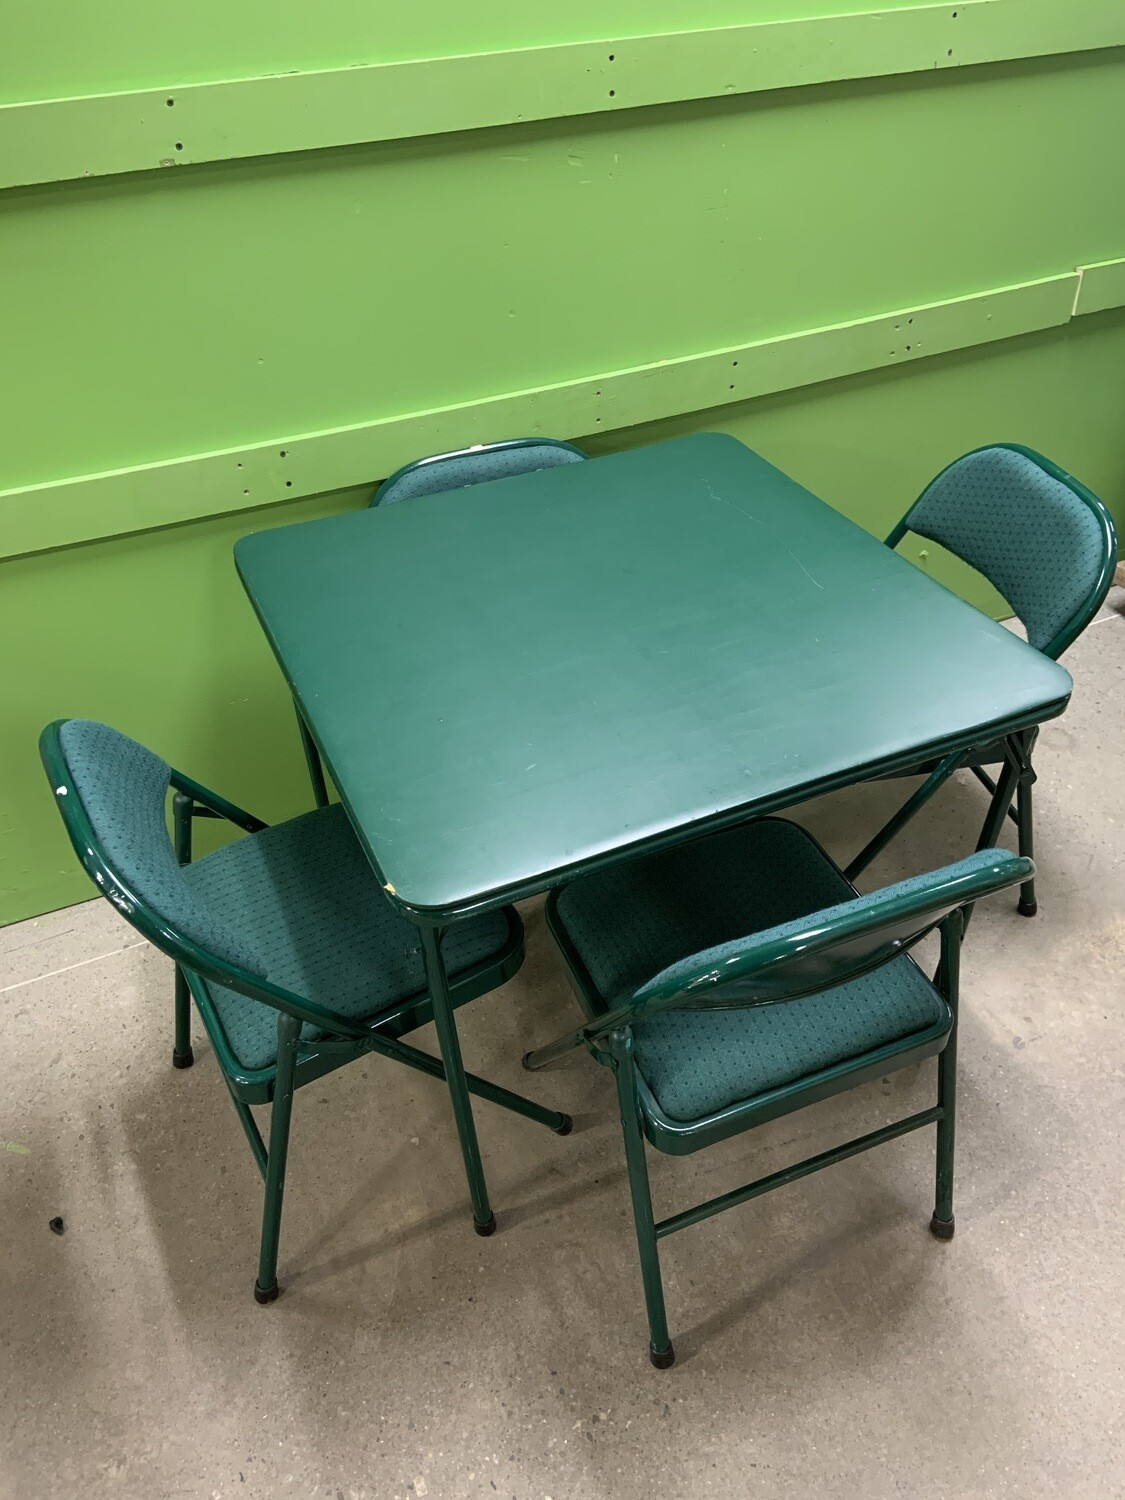 5 Piece Green Folding Game Room Card Table and Chair Set